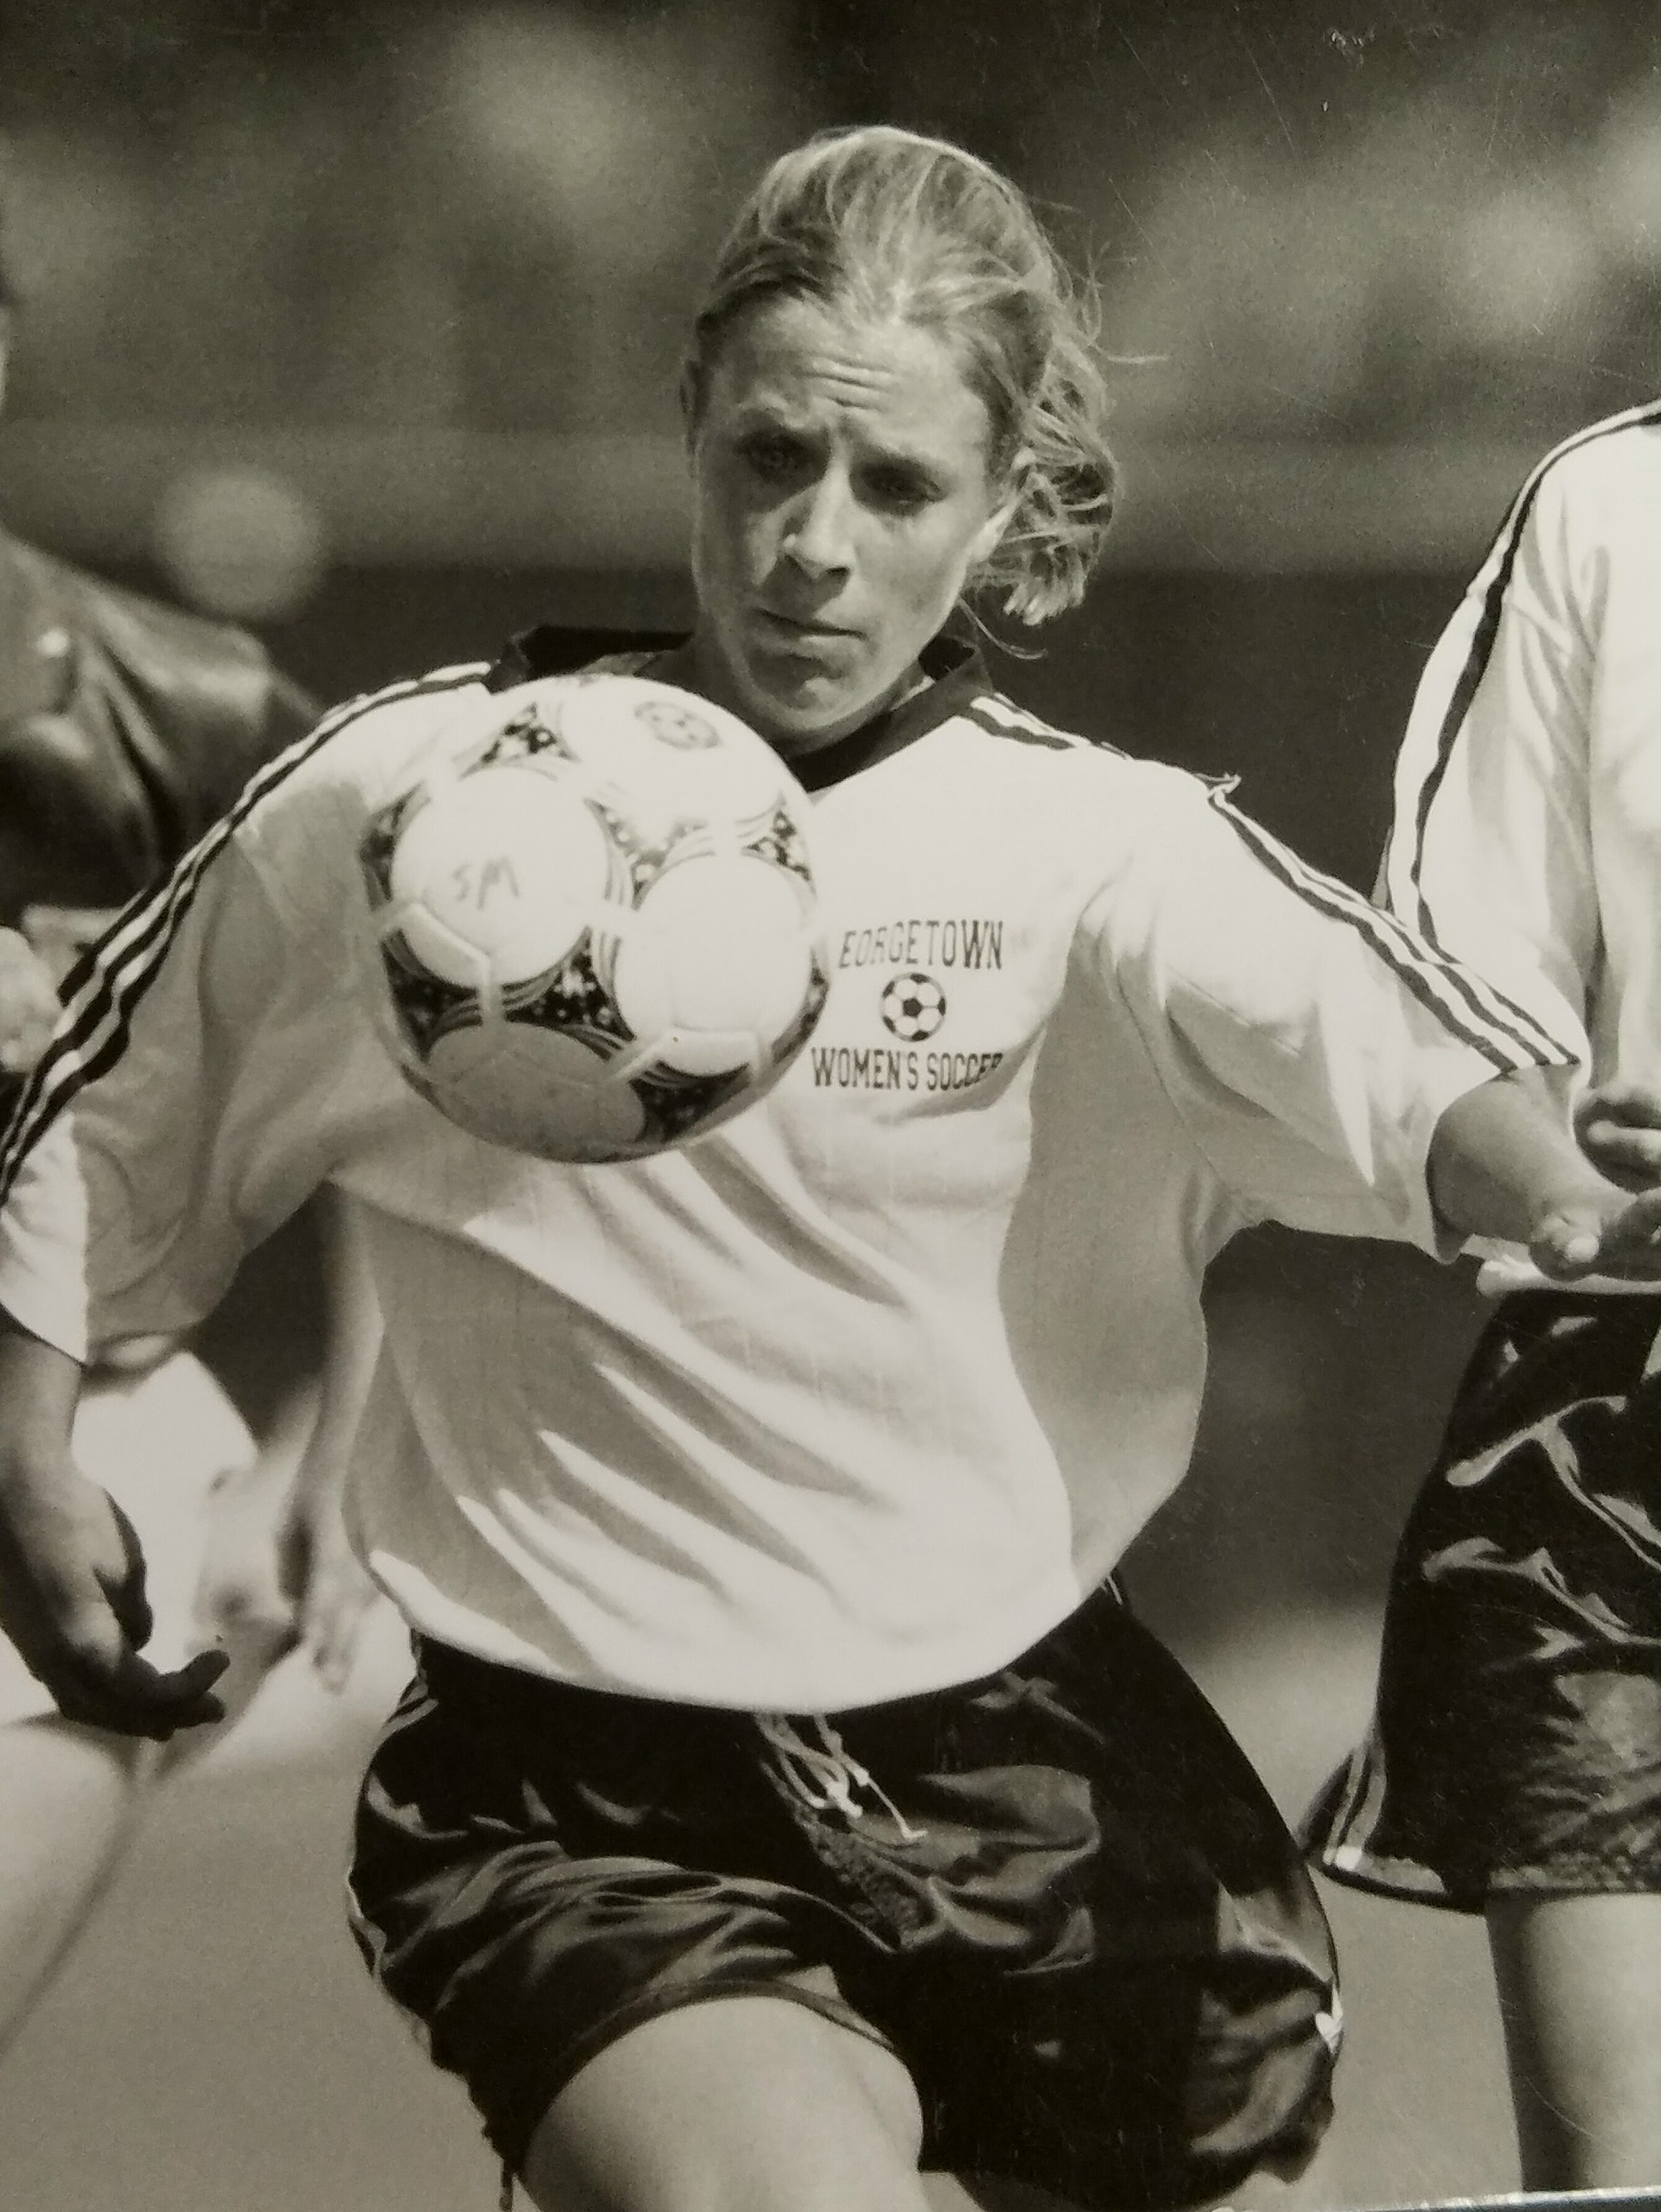 Christina Bruner, a standout striker and midfielder for the Georgetown University women's soccer team from 1994 to 1997, will be the first women's soccer player inducted into the university's Hall of Fame in February.